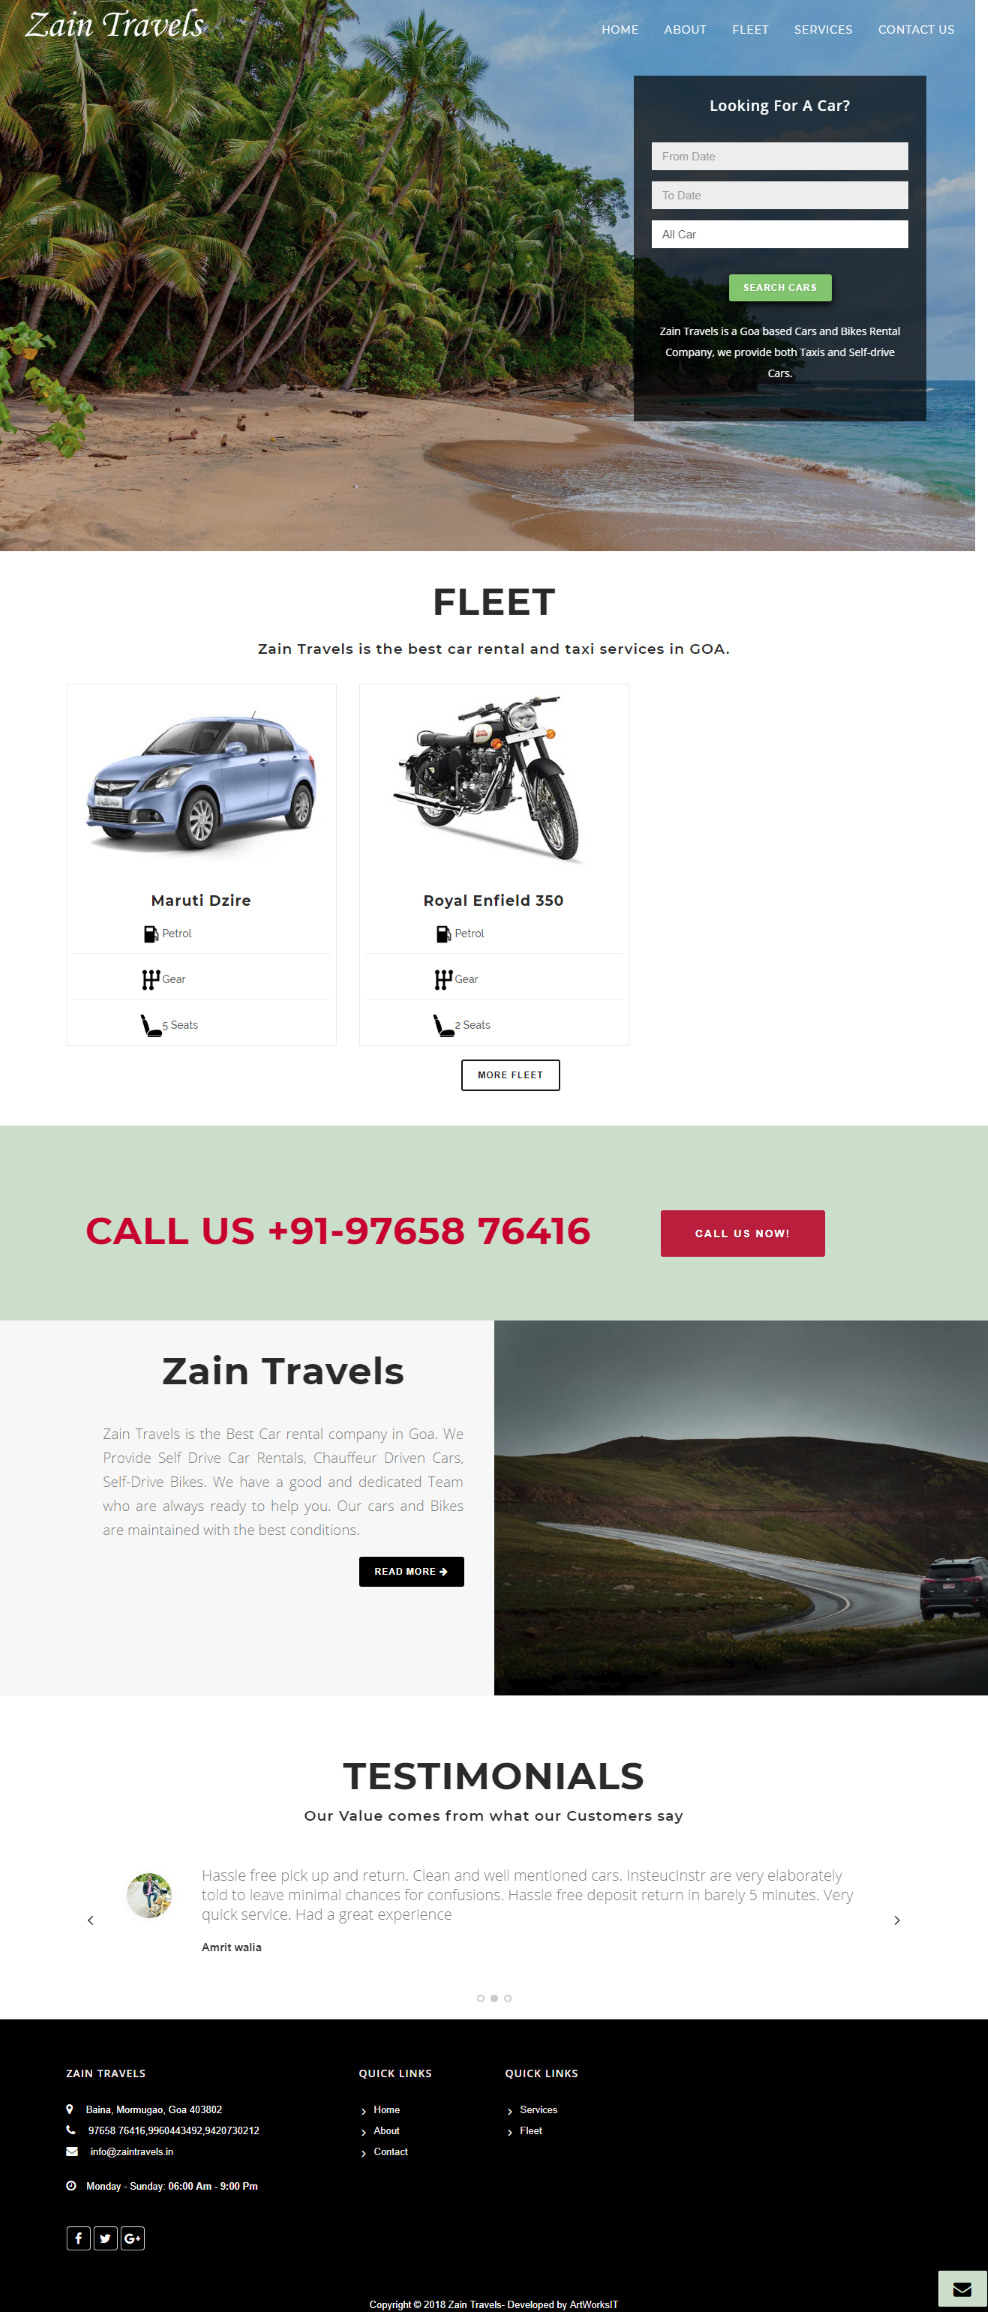 Zain Travels